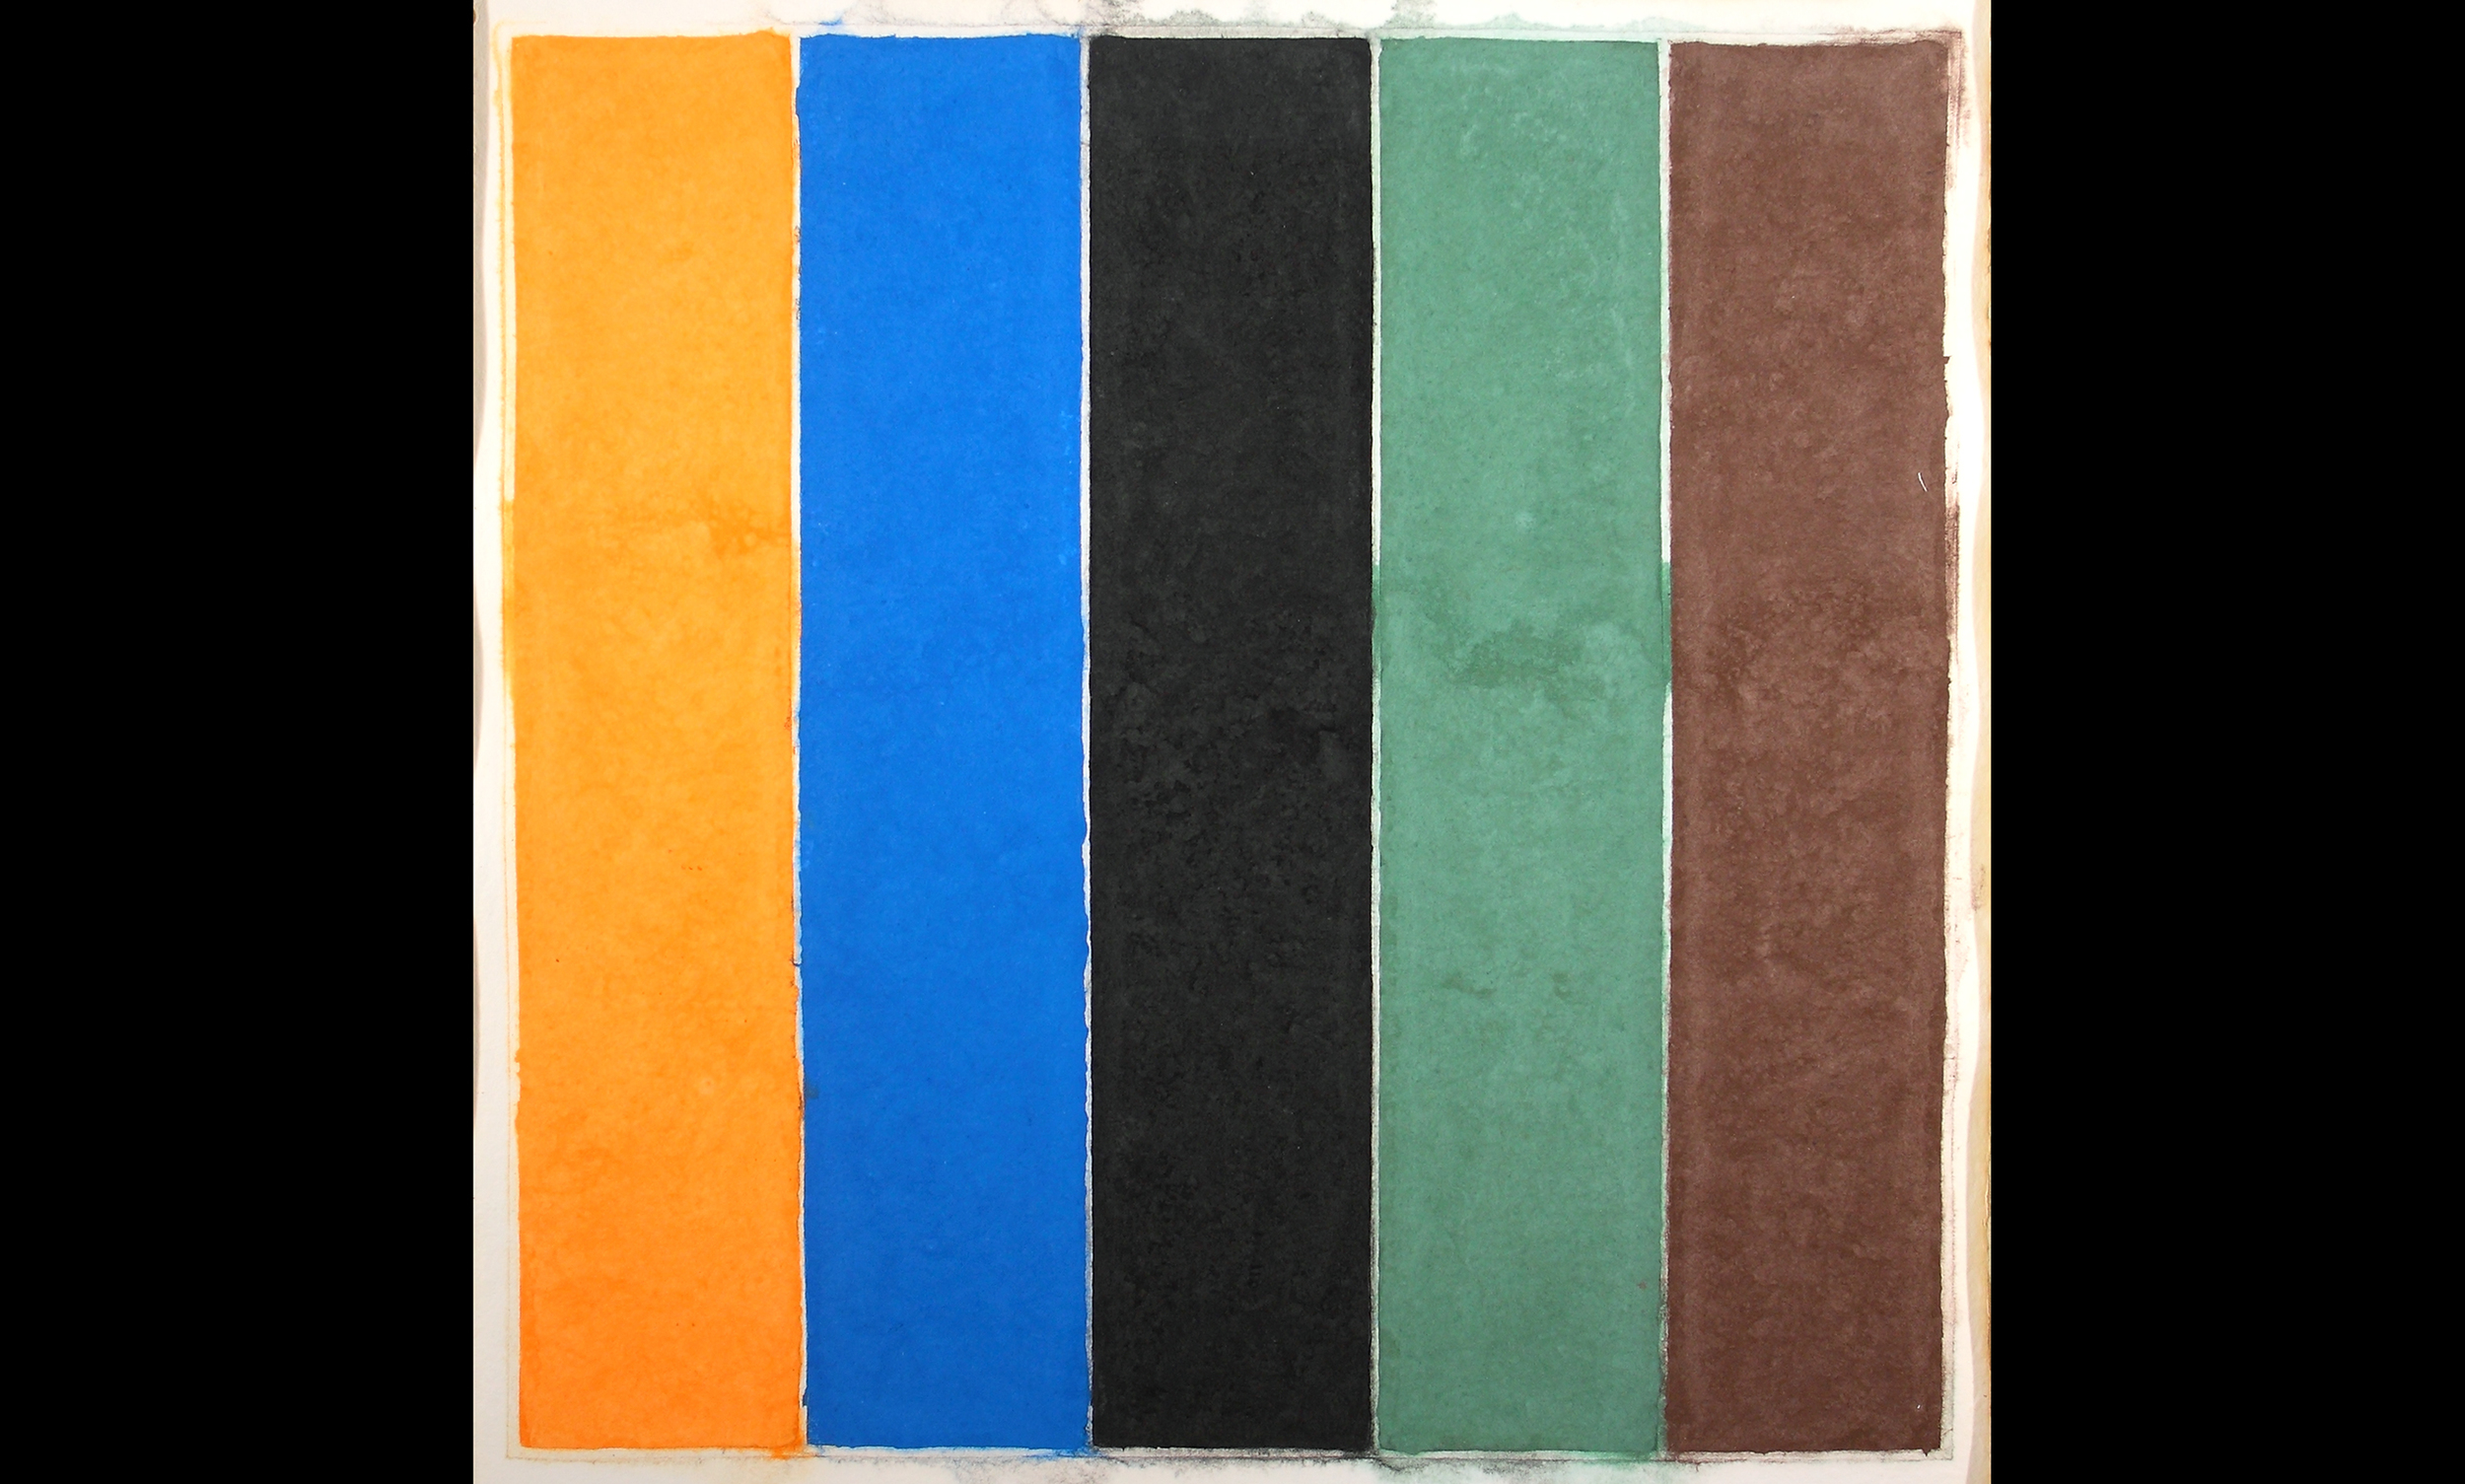 Two thick black rectangles on either side of colorful rectangles in a row.